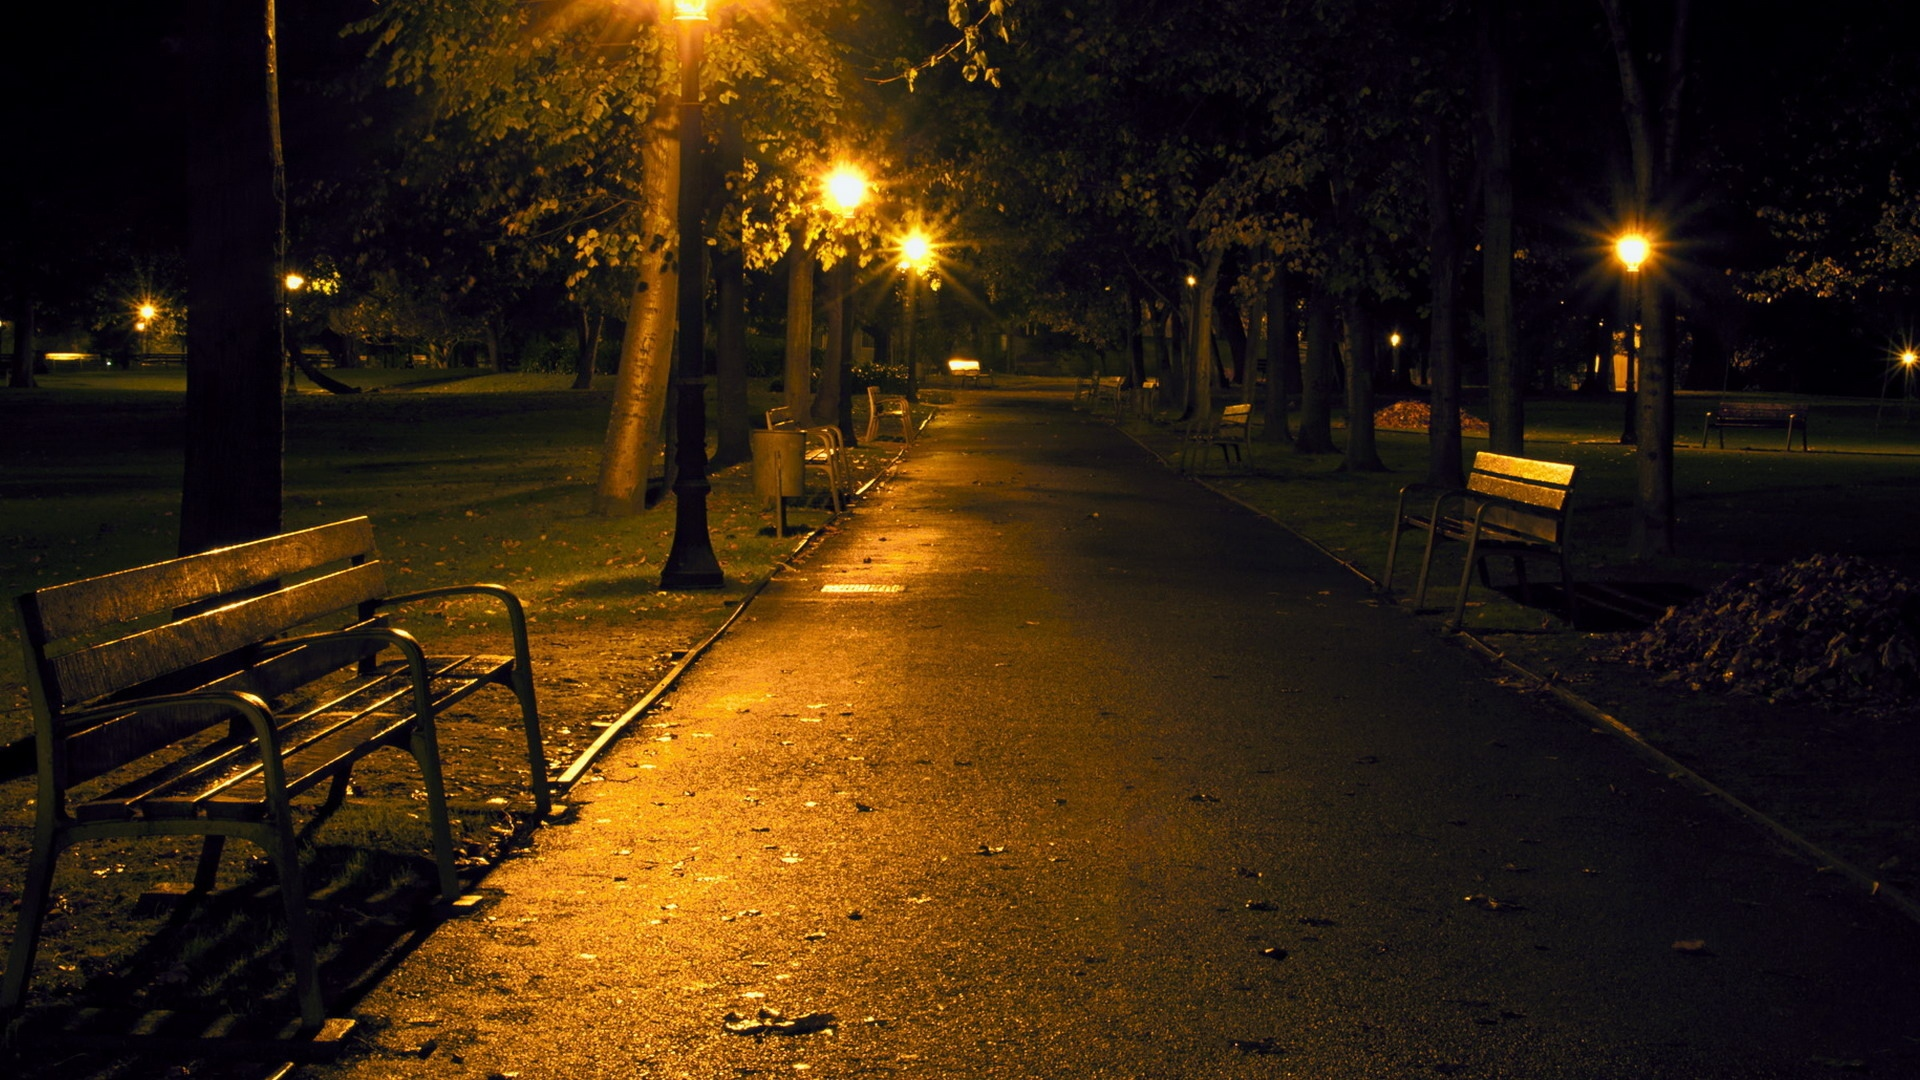 Earnings Disclaimer >> Download Wallpaper 1920x1080 city, night, park, benches Full HD 1080p HD Background